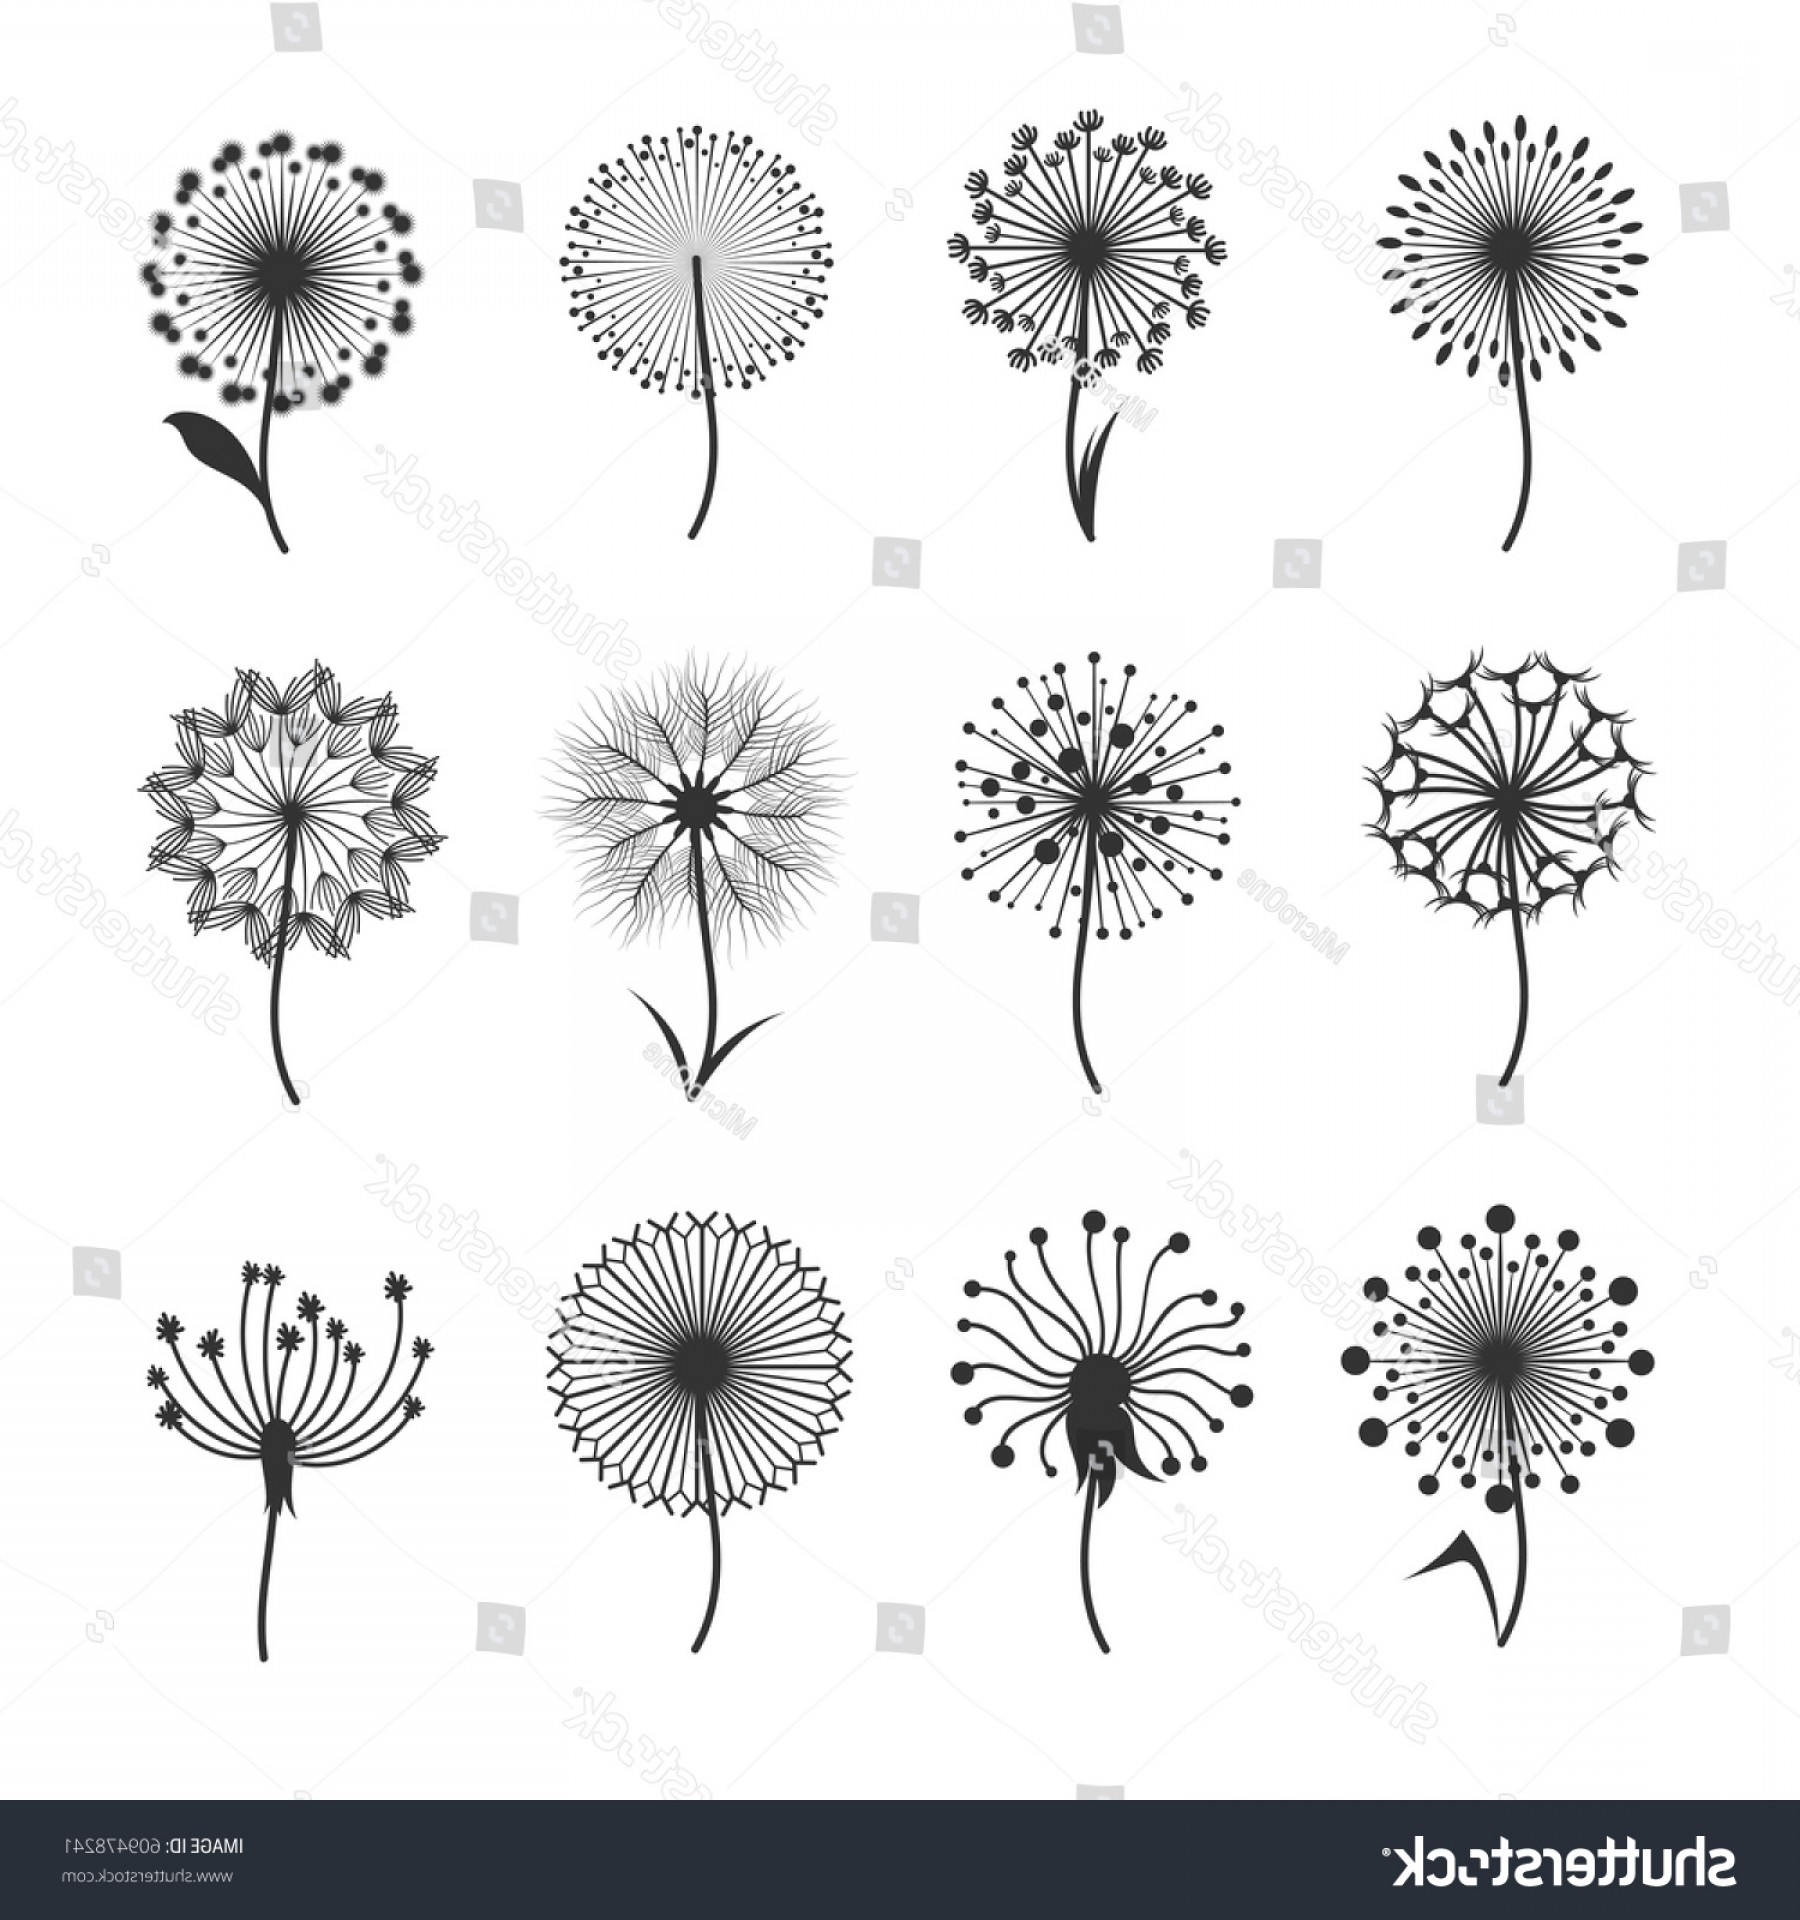 Seed Flower Vectors: Dandelion Flowers Fluffy Seeds Black Floral